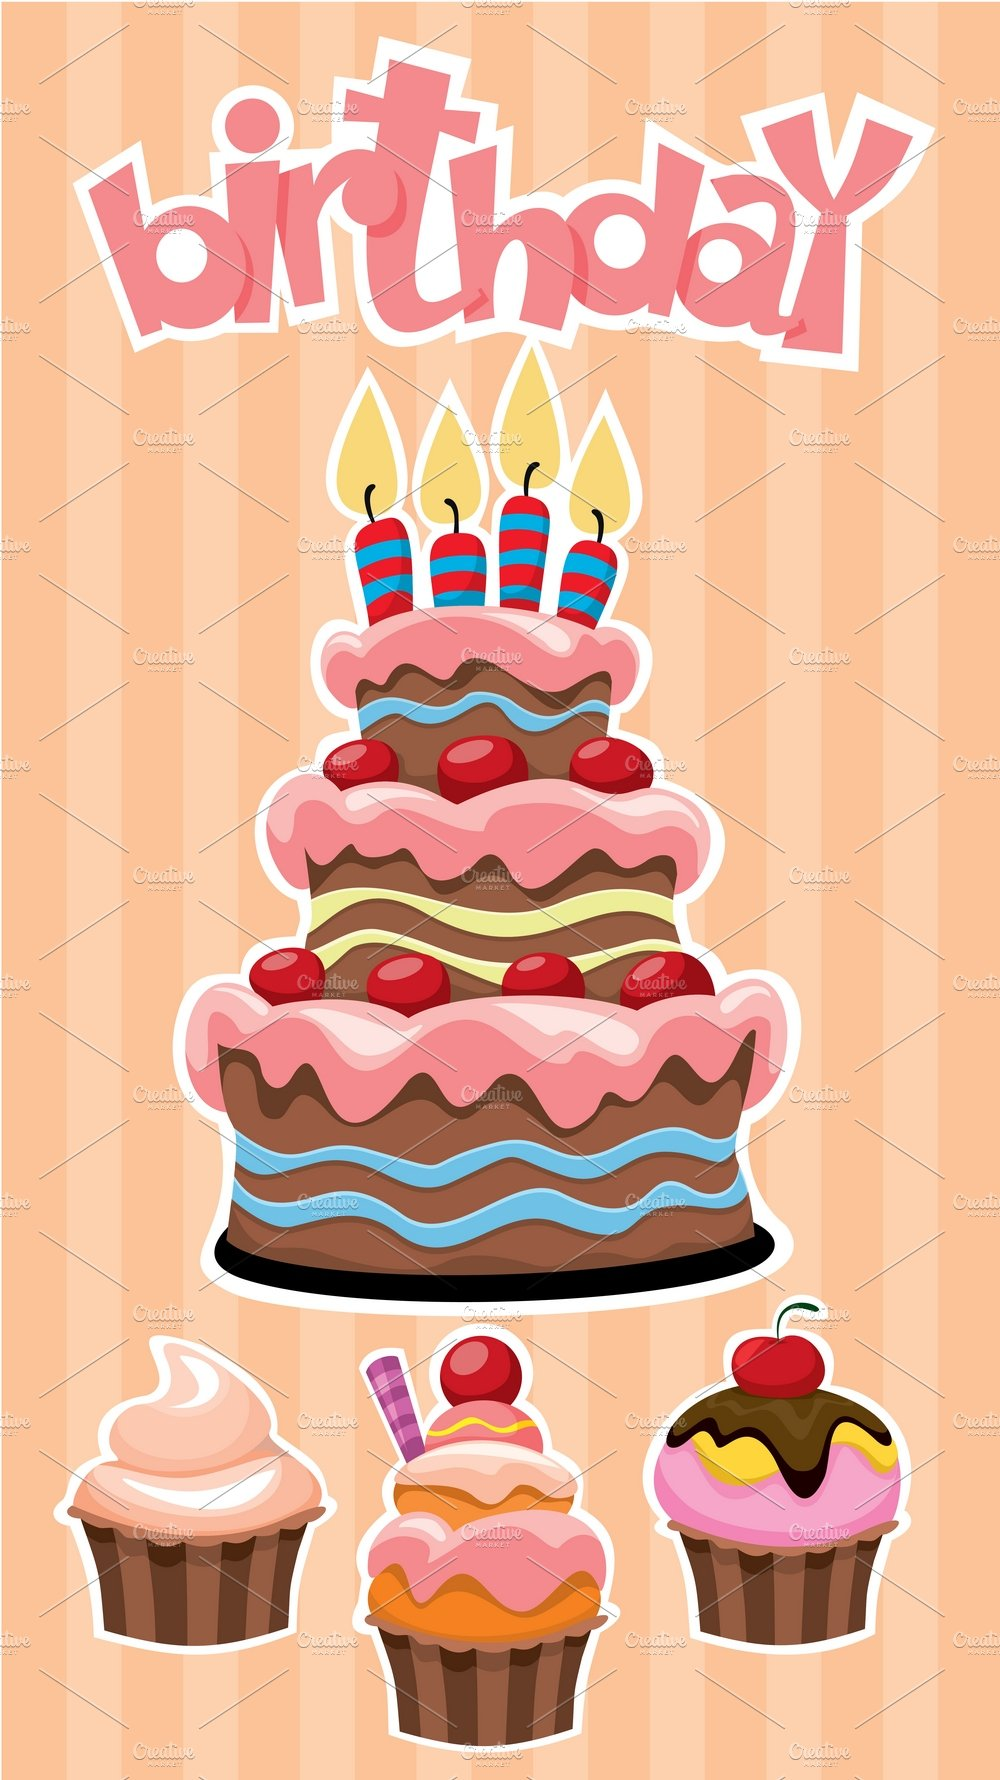 Colorful Birthday Desserts Template Illustrations Creative Market